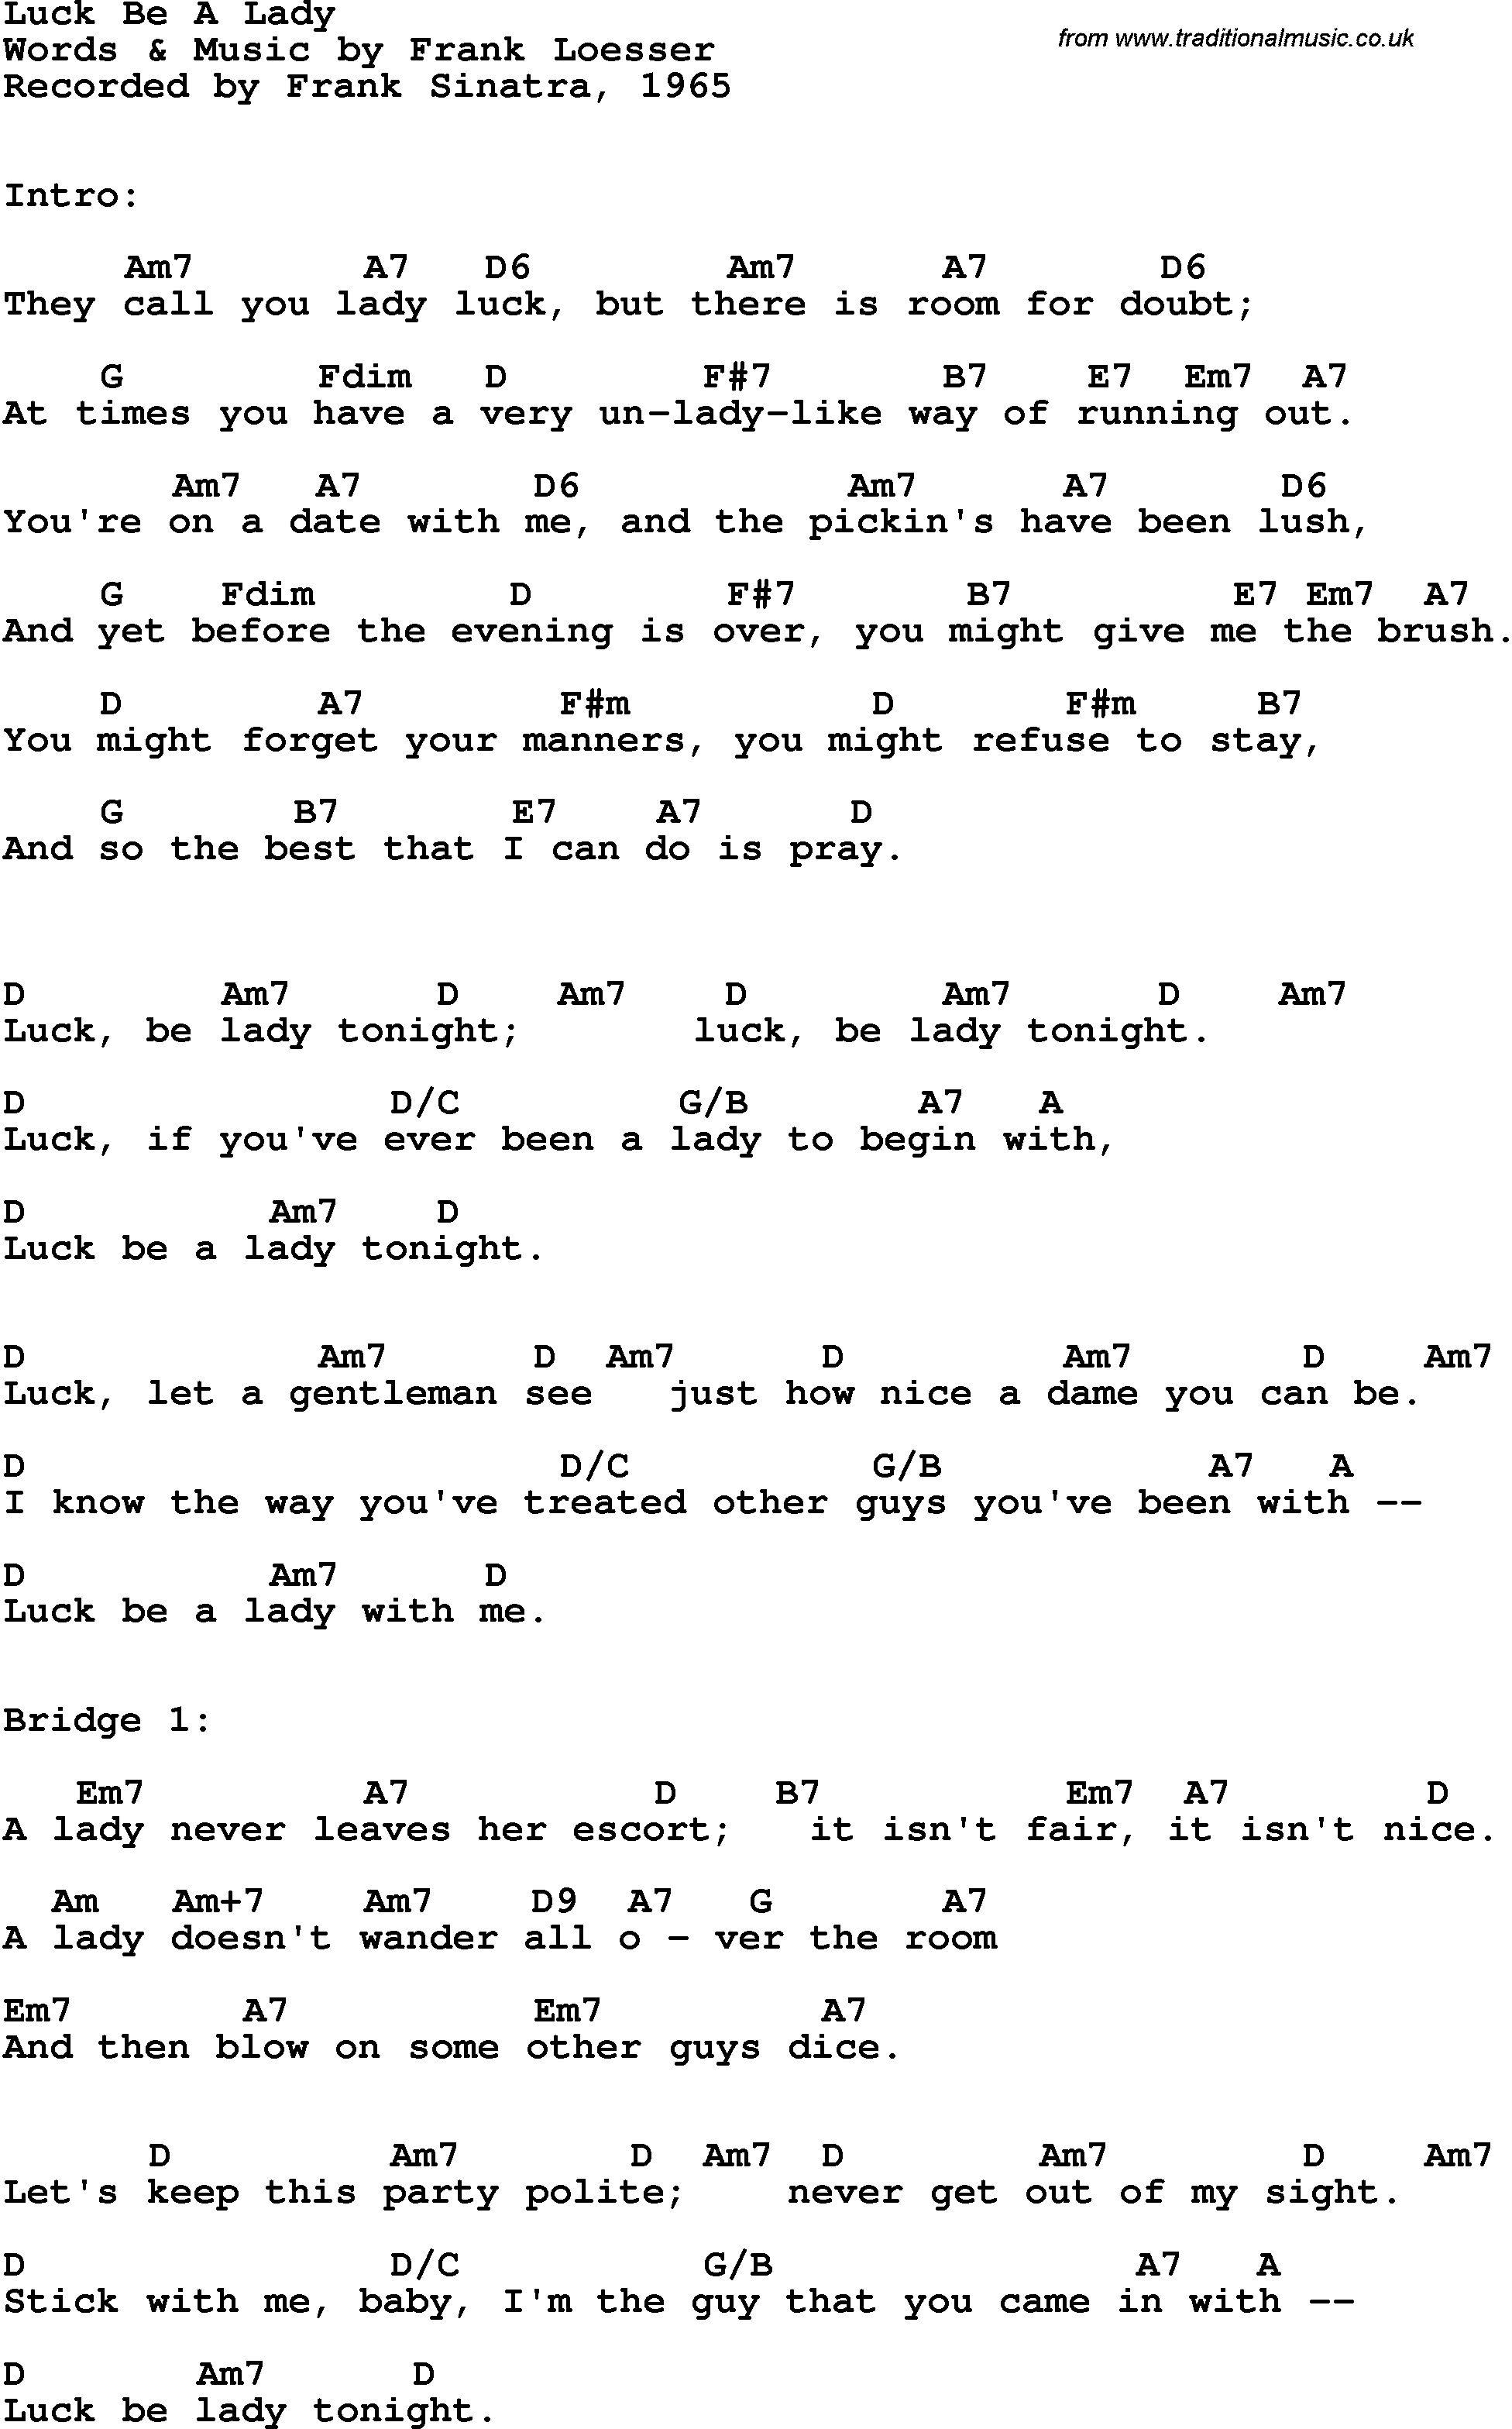 Song Lyrics With Guitar Chords For Luck Be A Lady Frank Sinatra 1965